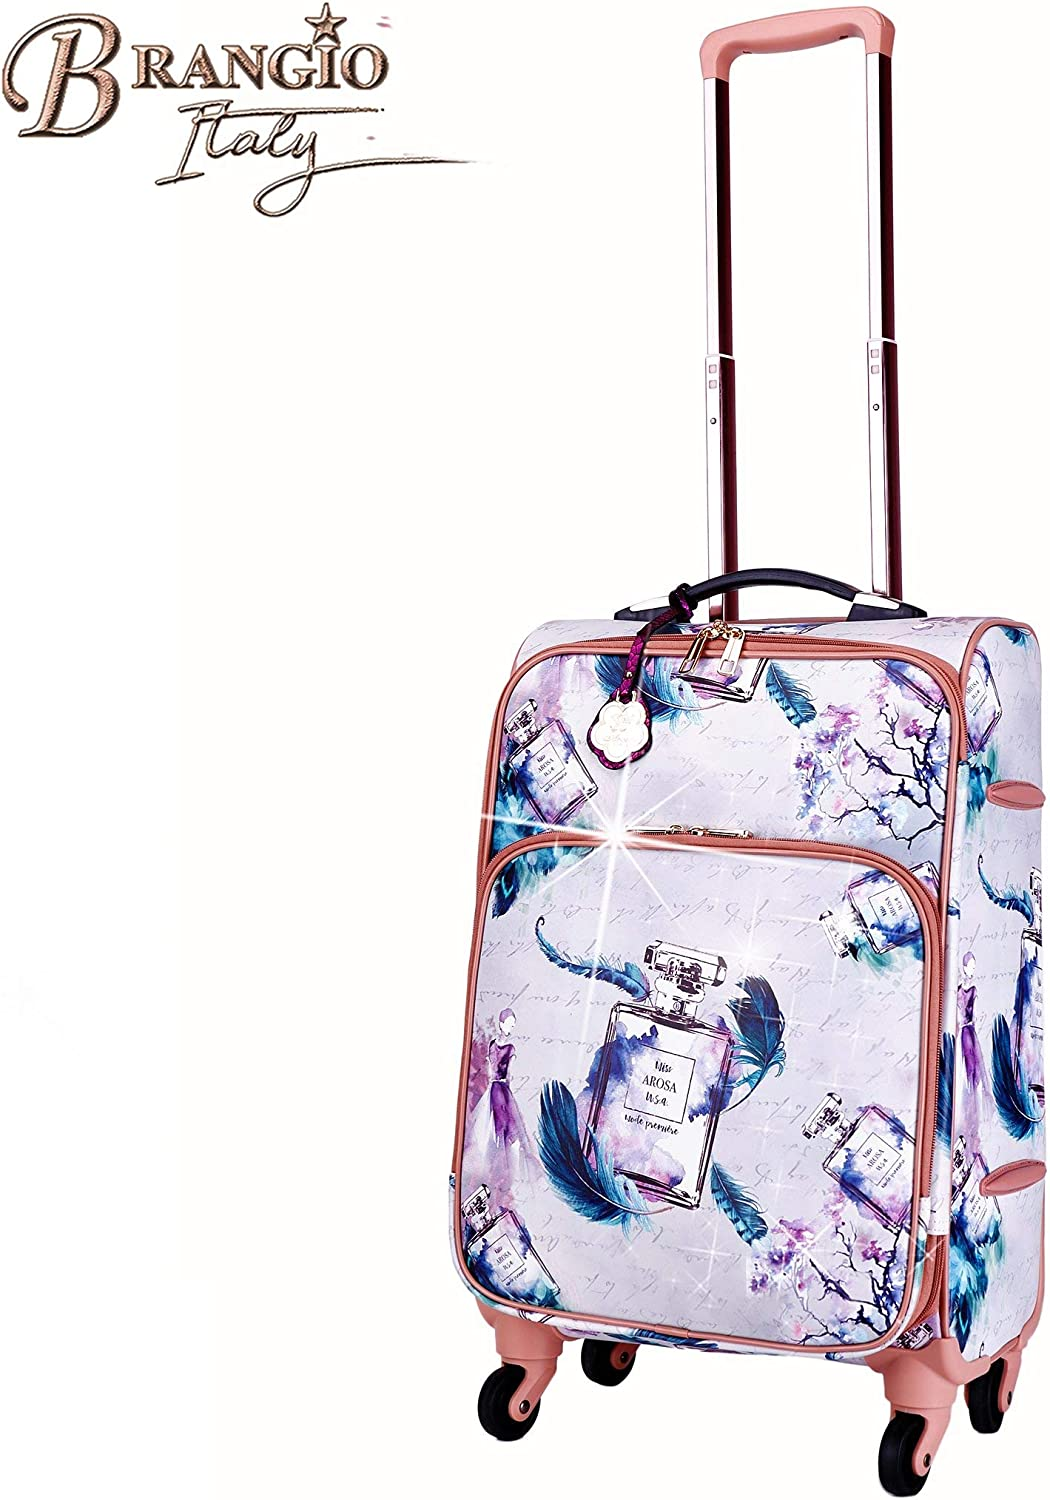 Sweet Scent Travel Suitcase Vintage Hollywood Graphic Design Luggage